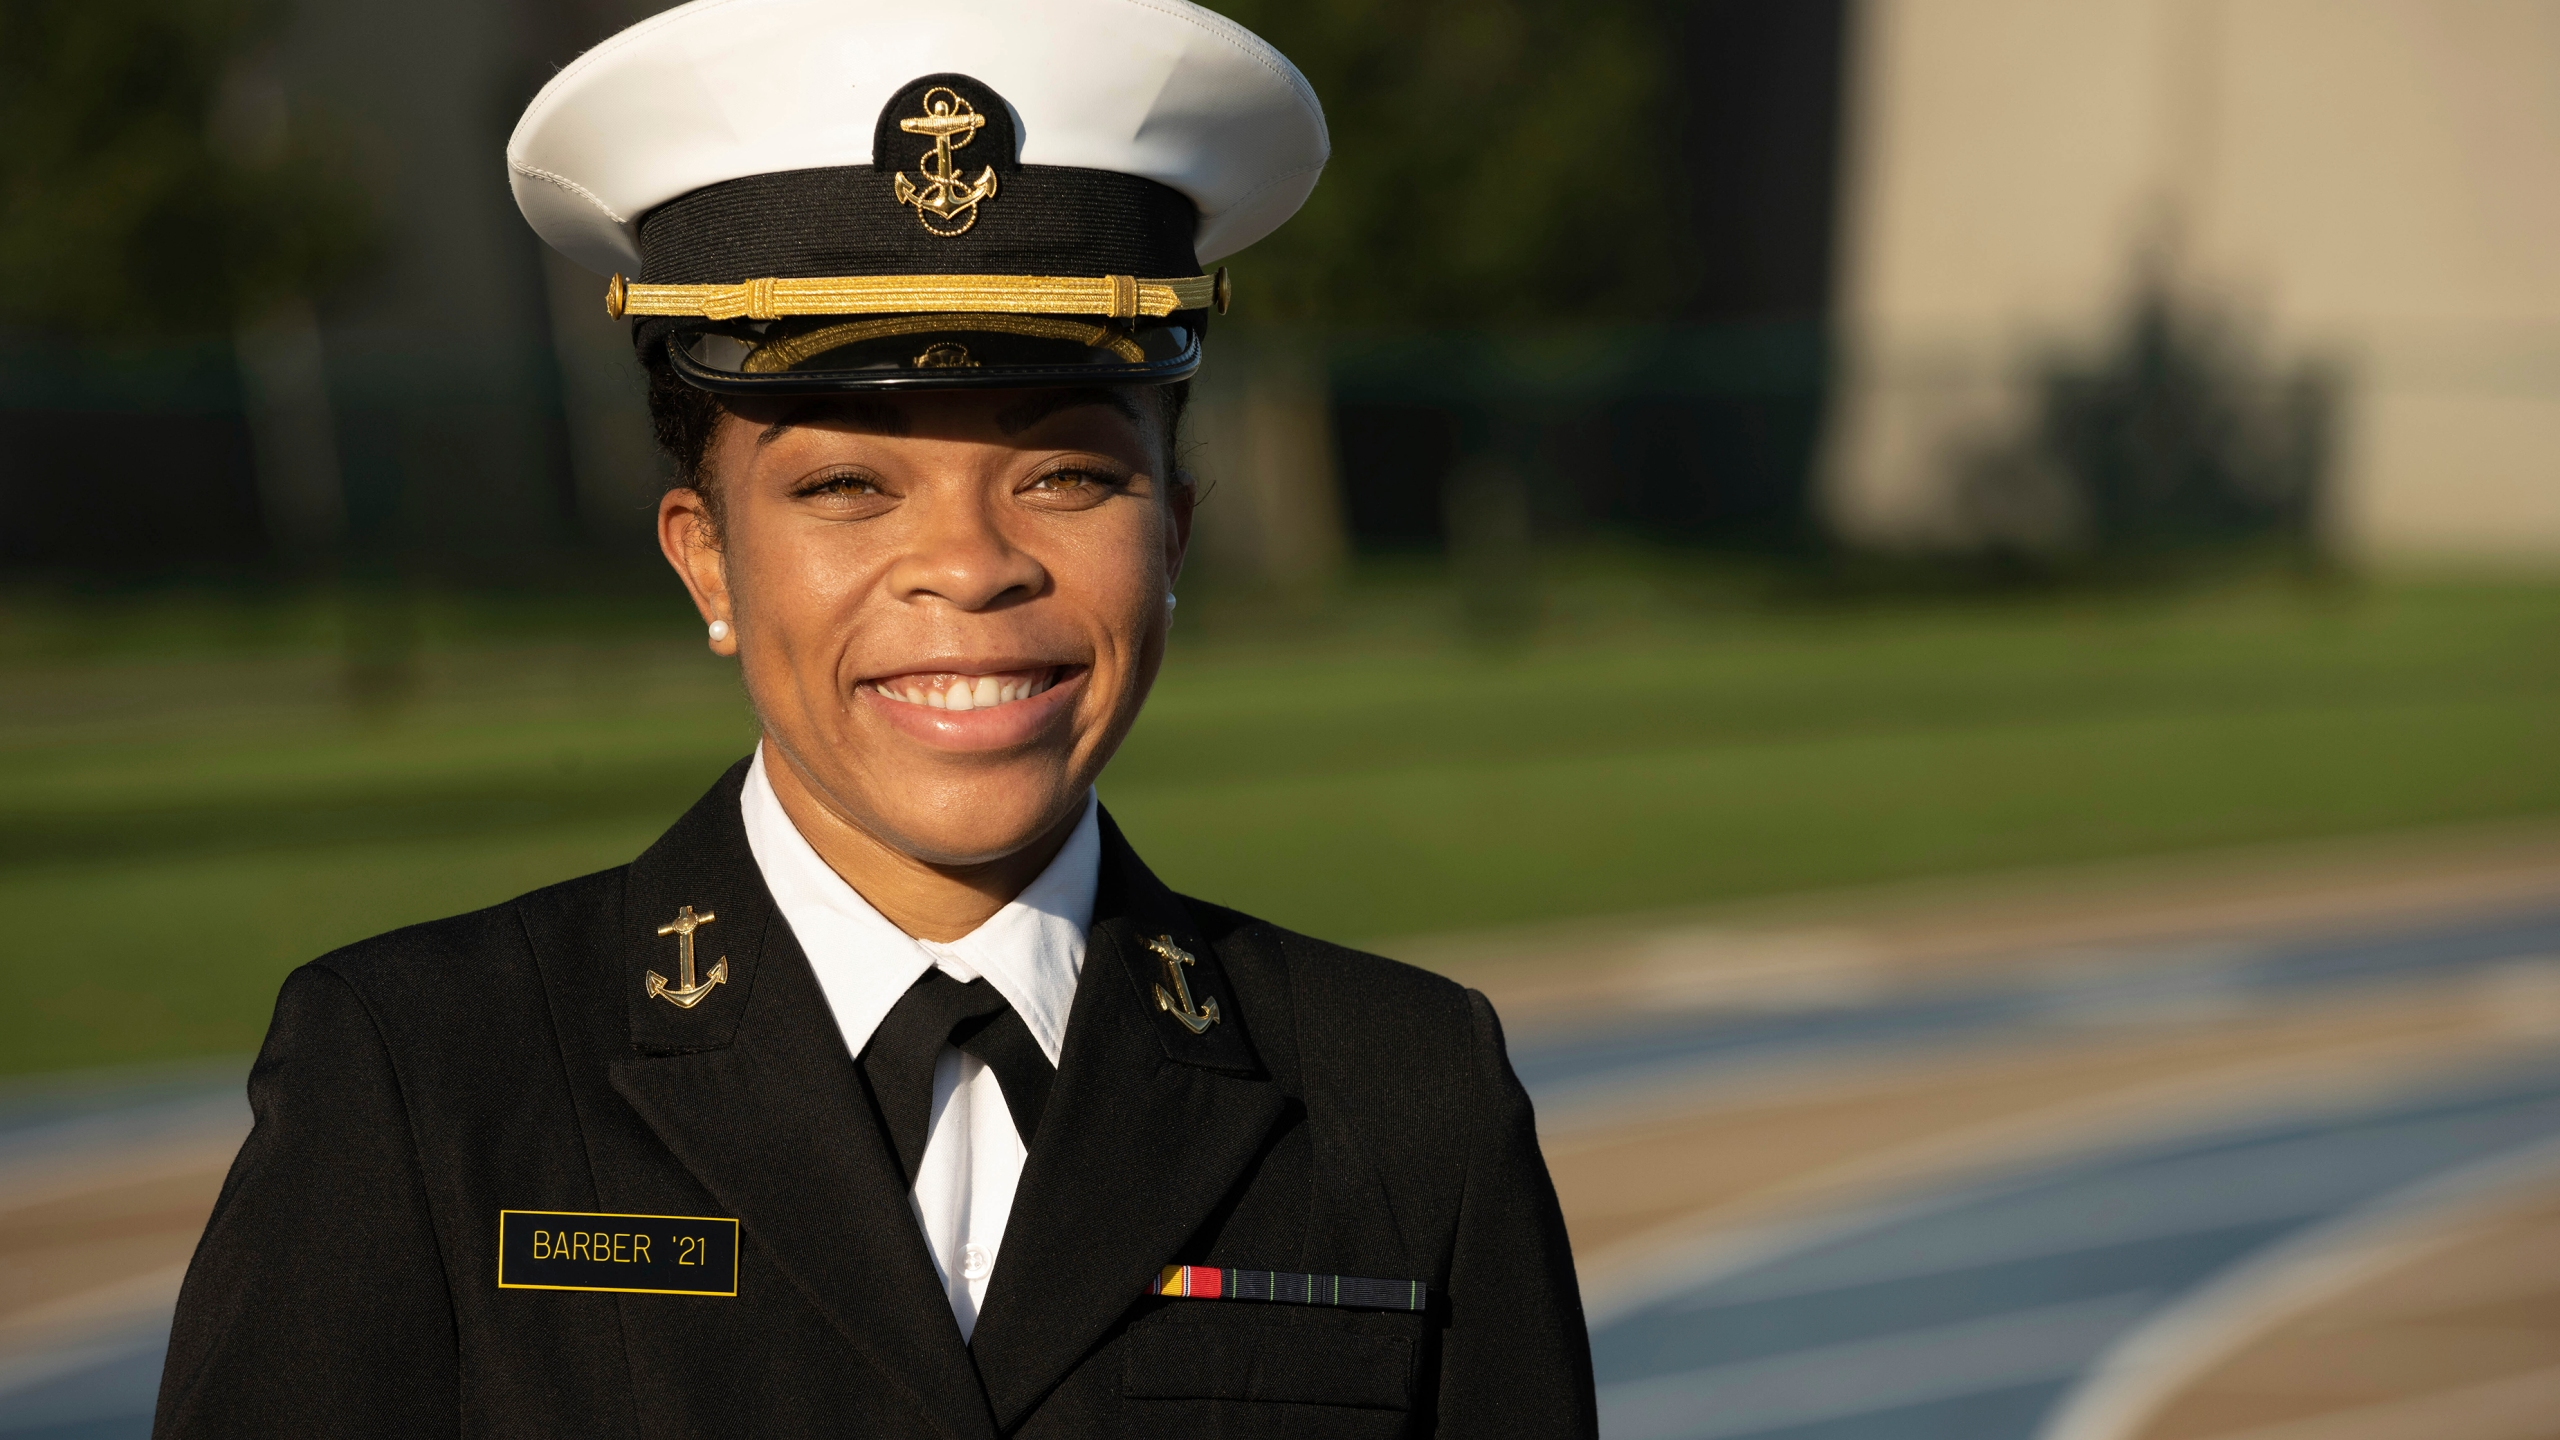 This undated photo provided by the U.S. Navy shows Midshipman 1st Class Sydney Barber, from Lake Forest, Ill. Barber is slated to be the Naval Academy's first African American female brigade commander, the U.S. Naval Academy announced Monday, Nov. 9, 2020. (Petty Officer 2nd Class Nathan Burke/U.S. Navy via AP)